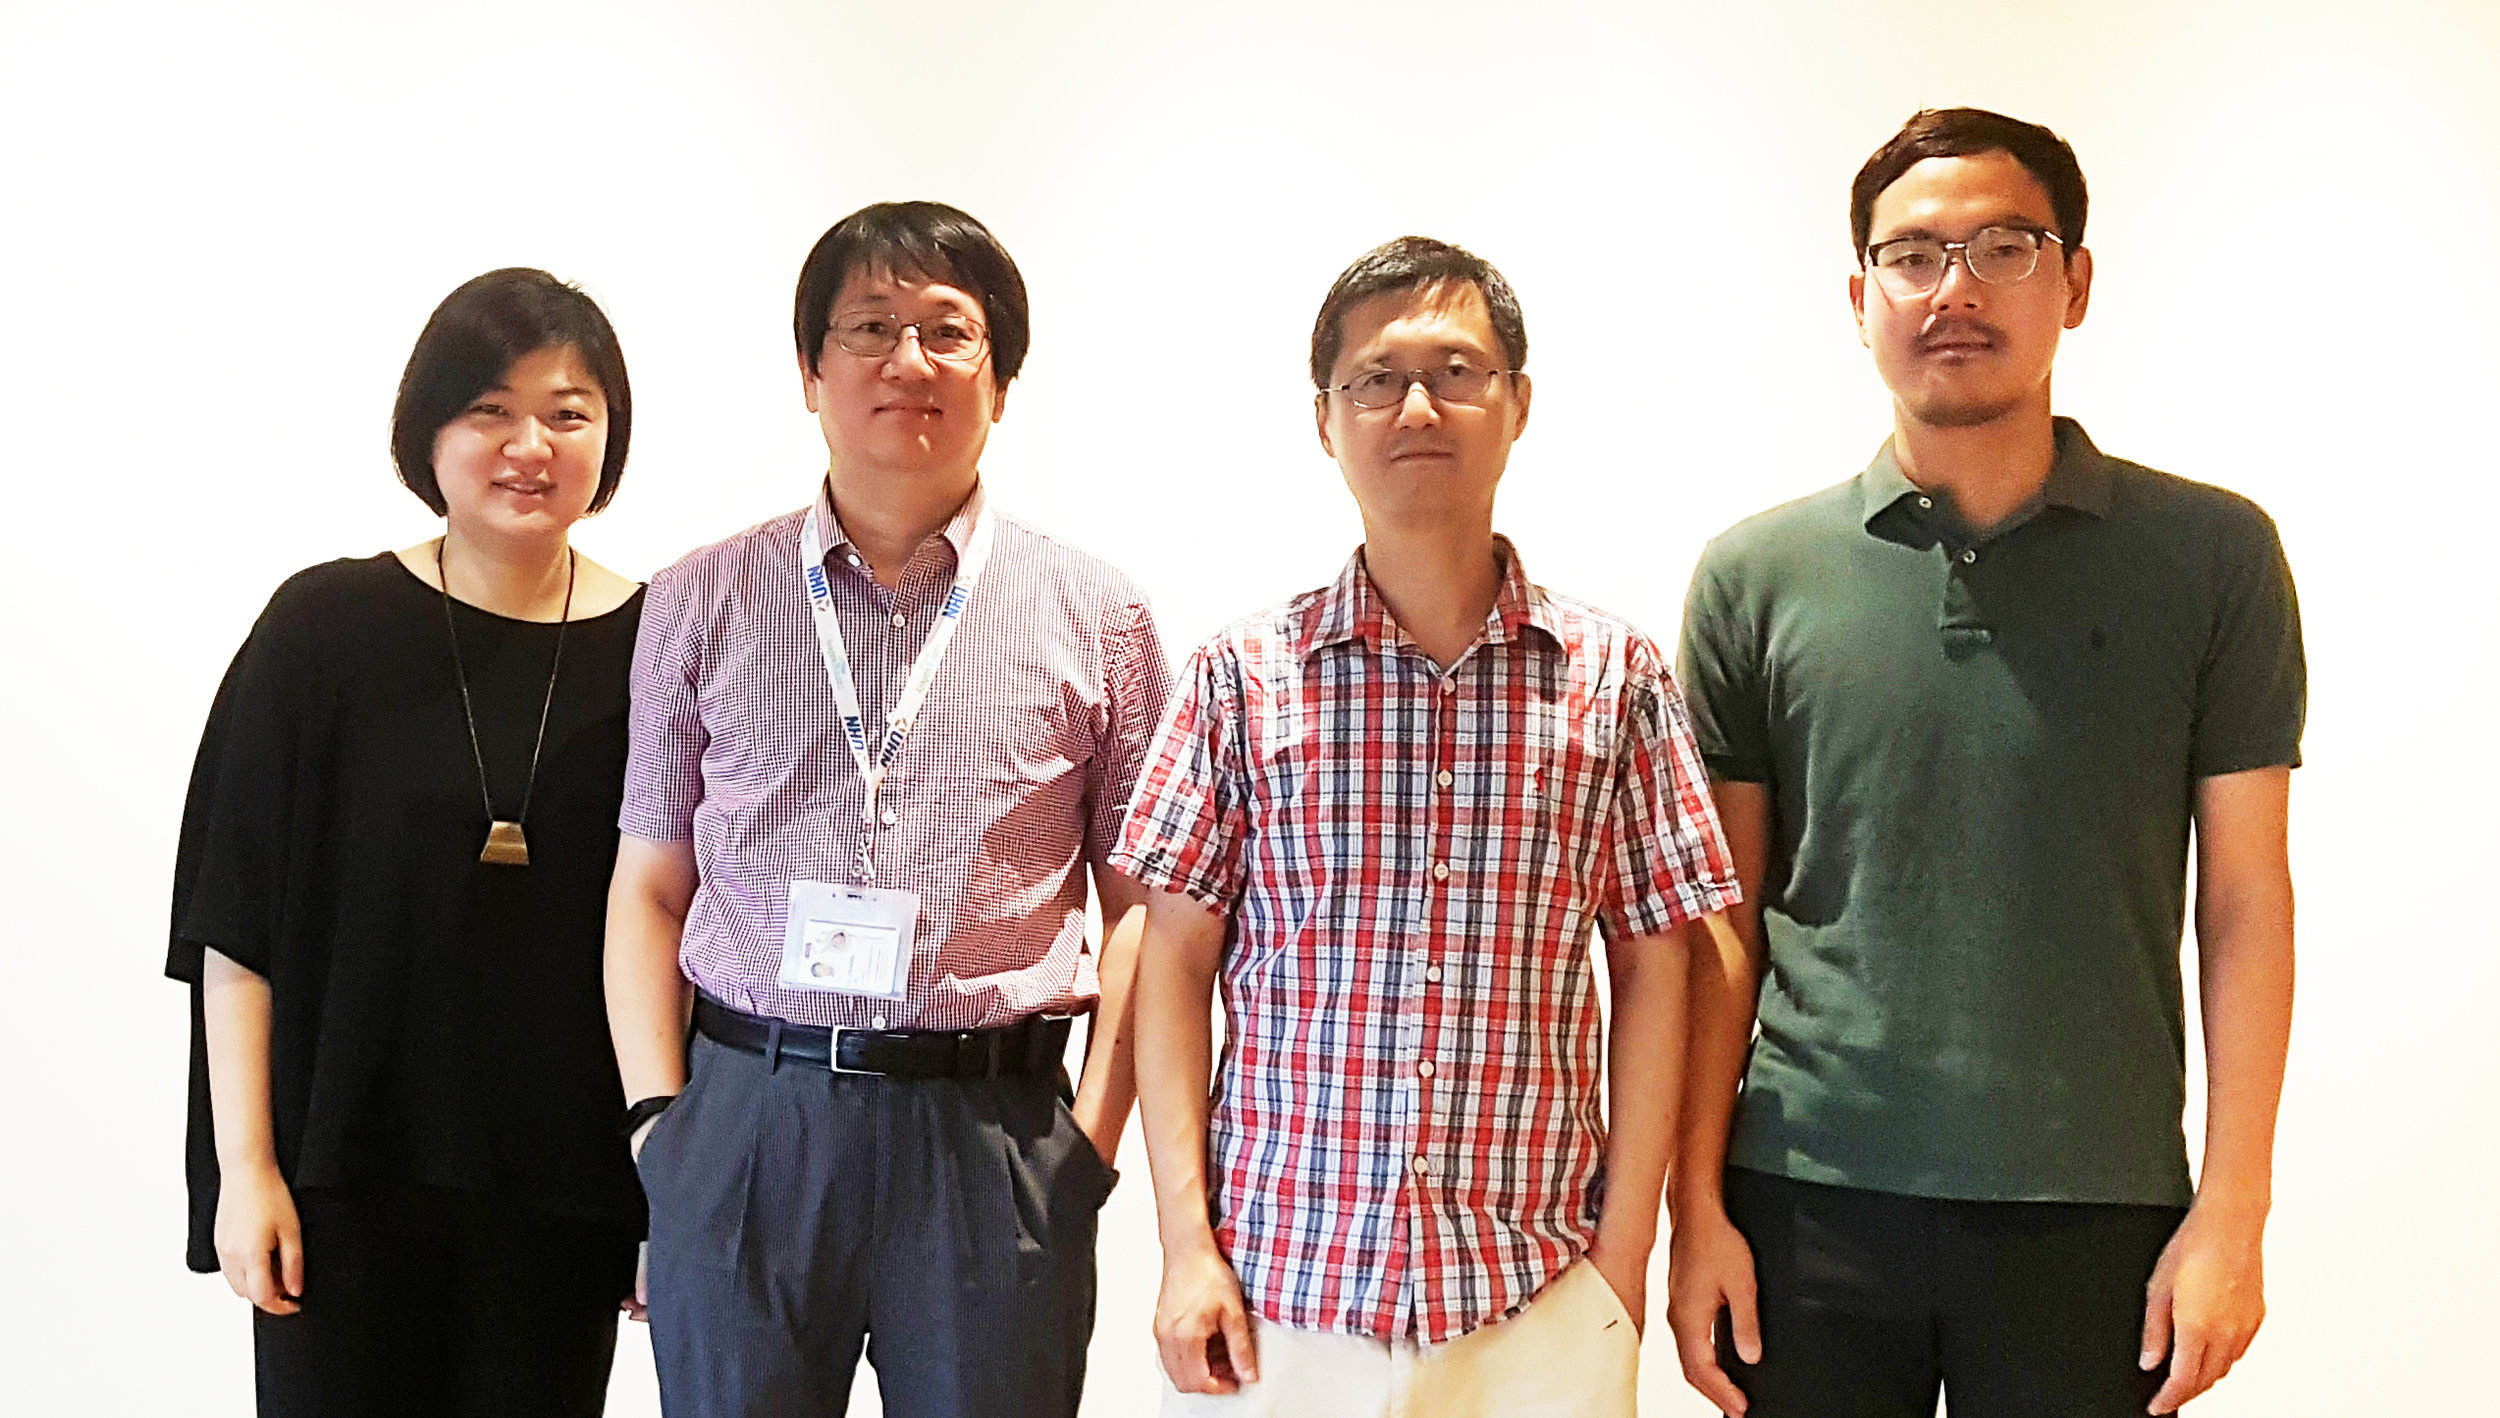 International team behind the study, from left to right, JAE-SOOK AHN, a visiting researcher in the Donnelly Centre from Chonnam National University Hwasun Hospital, Korea, DENNIS KIM, from the Princess Margaret Cancer Centre, with ZHAOLEI ZHANG and TAEHYUNG (SIMON) KIM from the Donnelly Centre.